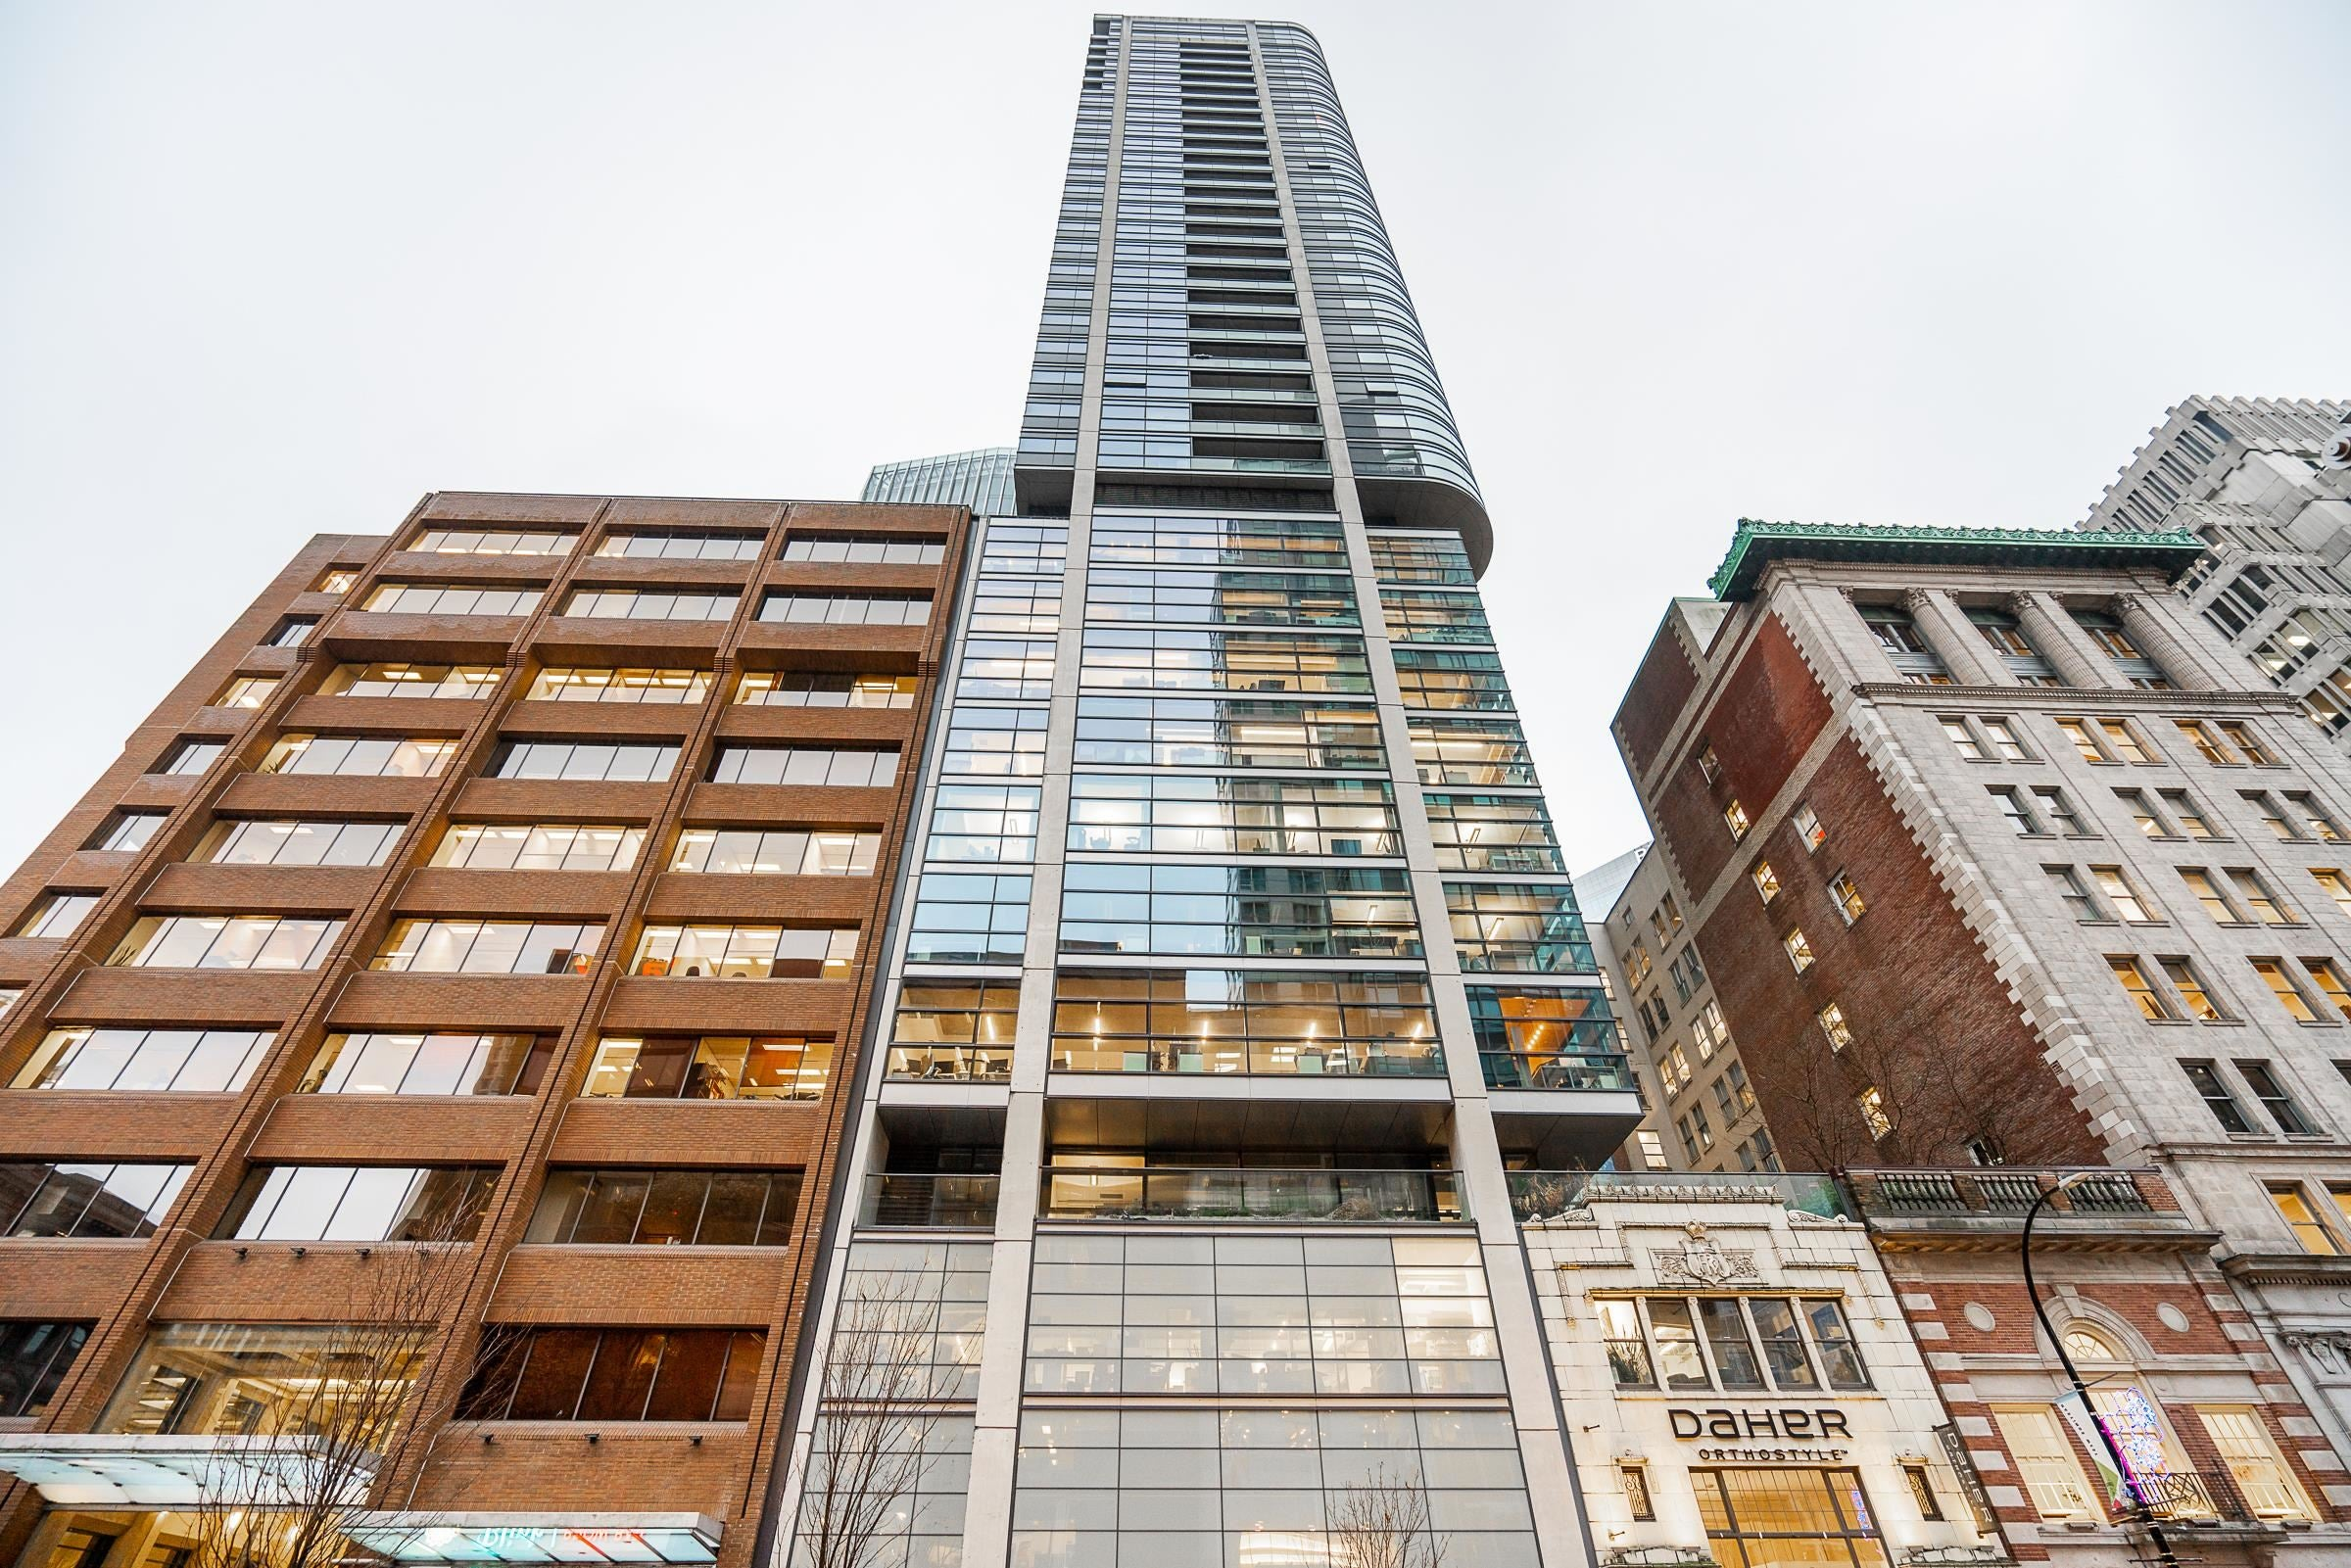 1506 838 W HASTINGS STREET - Downtown VW Apartment/Condo for sale, 2 Bedrooms (R2617817) - #1